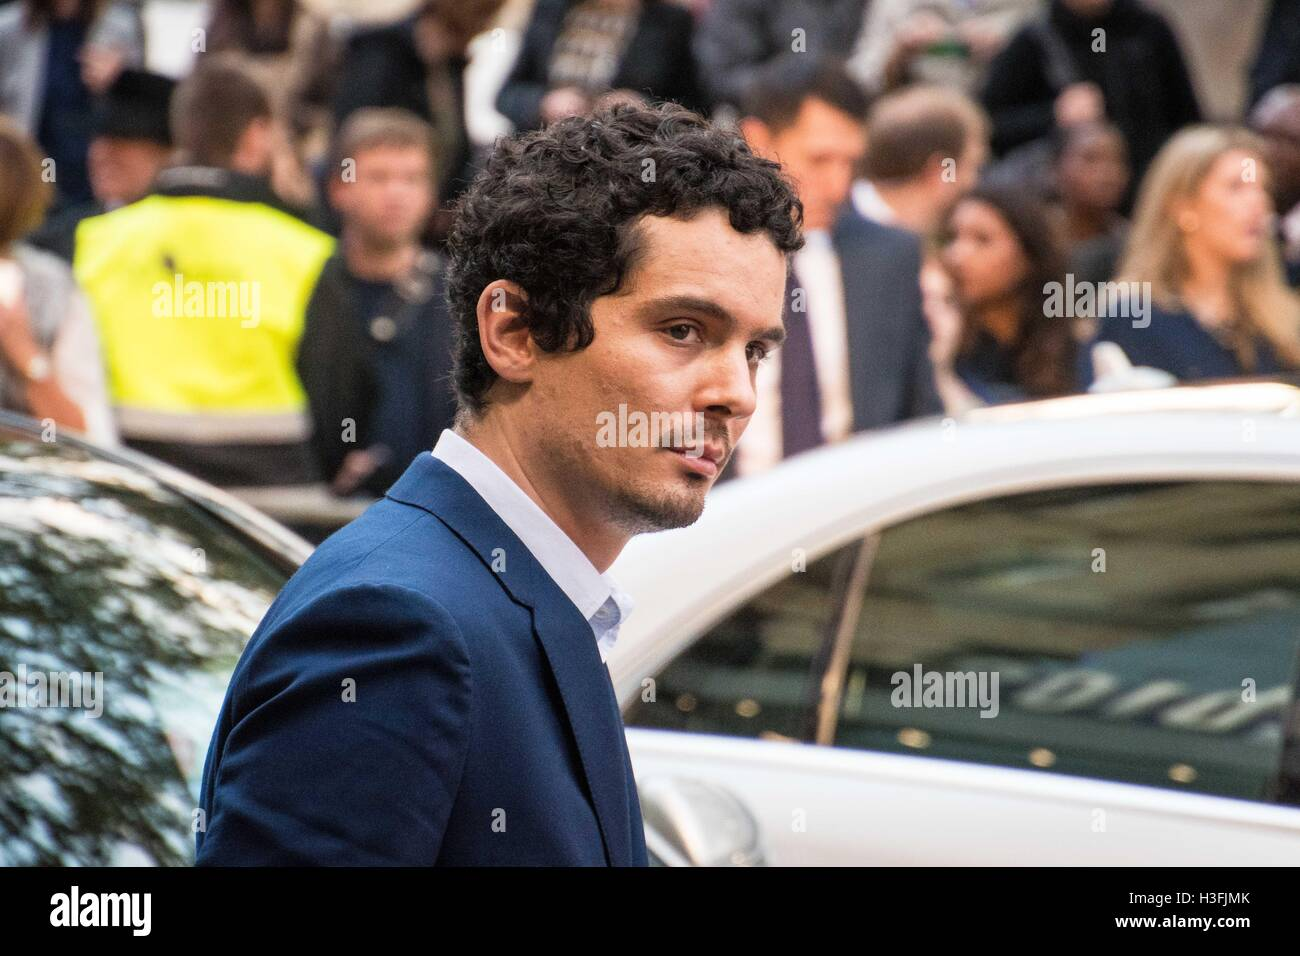 London, UK. 07th Oct, 2016. Director Damien Chazelle arrives to walk the red carpet of his film 'La La Land' - Stock Image